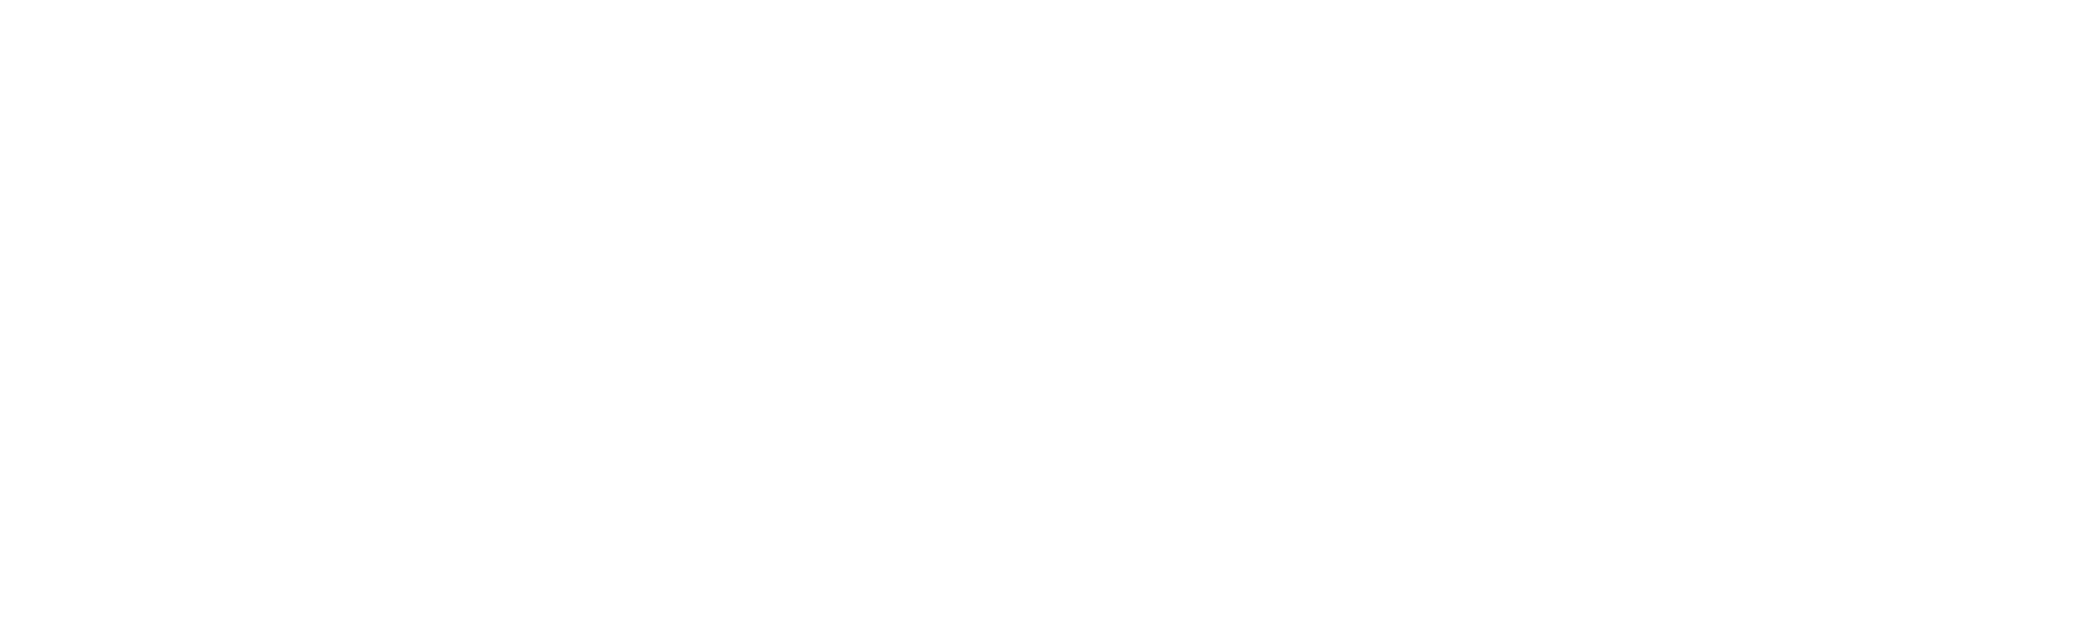 Just One Recovery logo